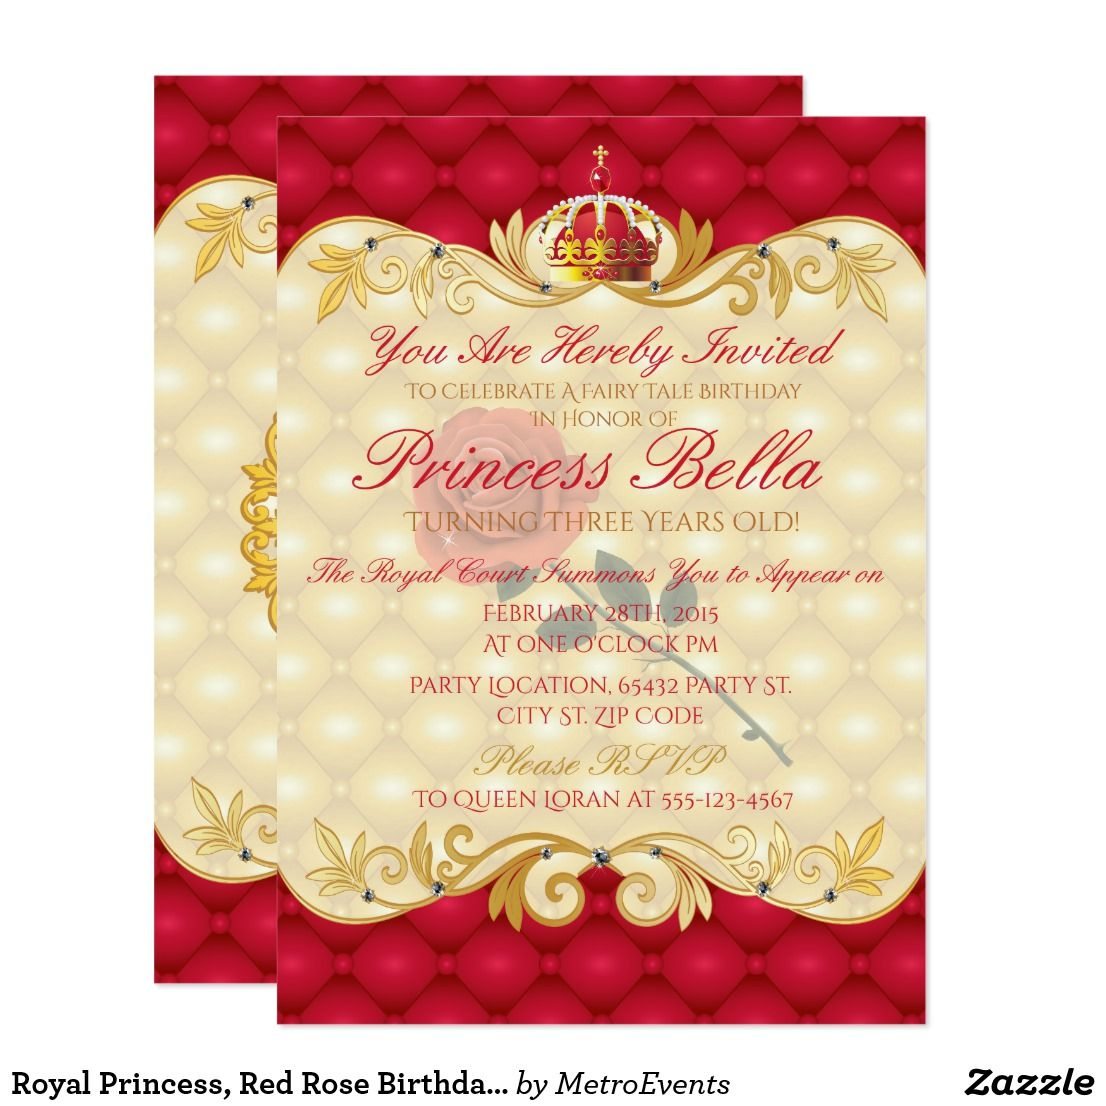 Royal princess red rose birthday invitations royal princess enchanting royal rose birthday invitations metro events mermaid and pirates party supplies are available through our websites at metro event and filmwisefo